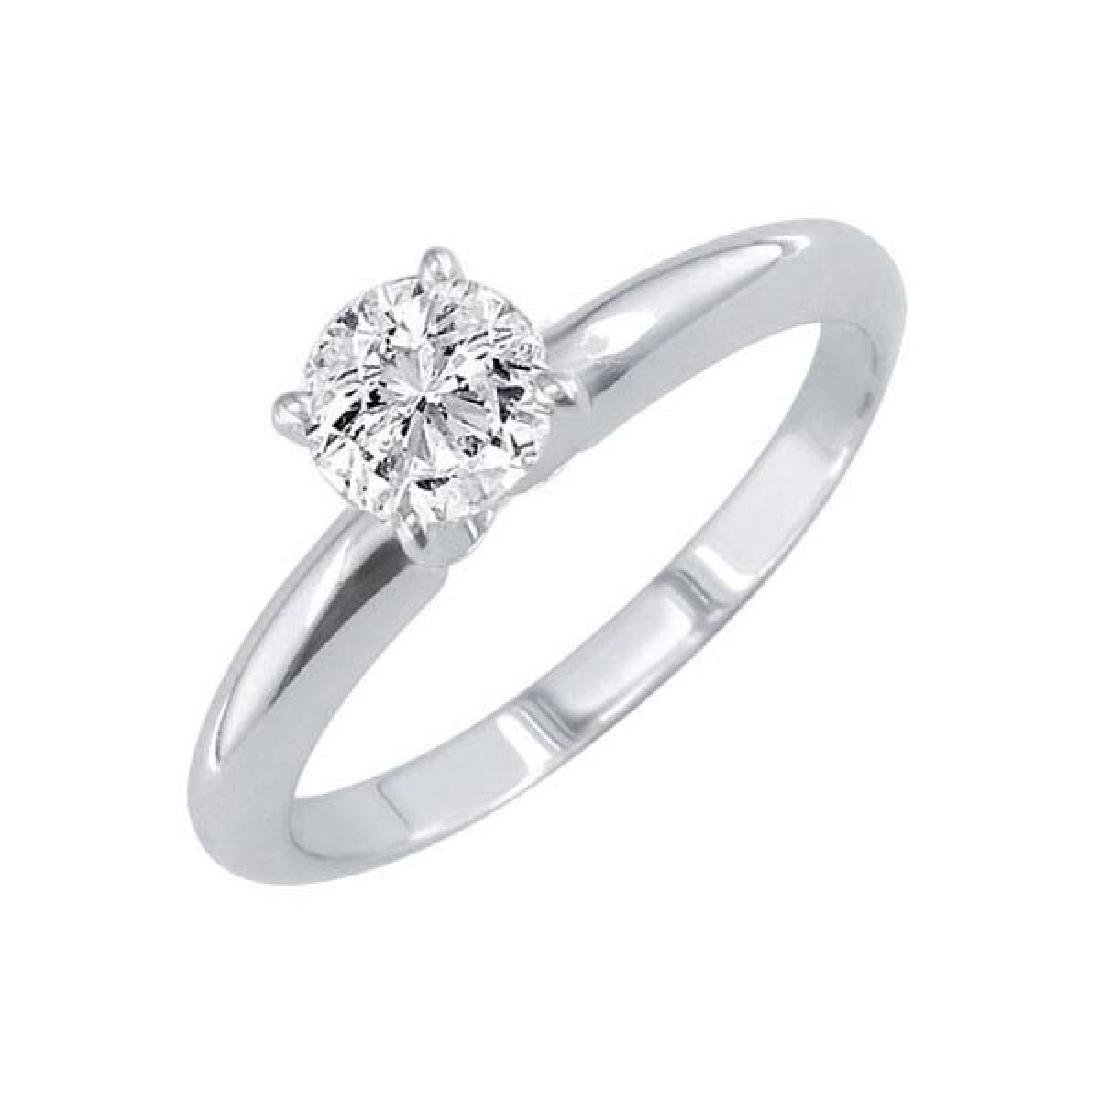 Certified 1.03 CTW Round Diamond Solitaire 14k Ring F/S